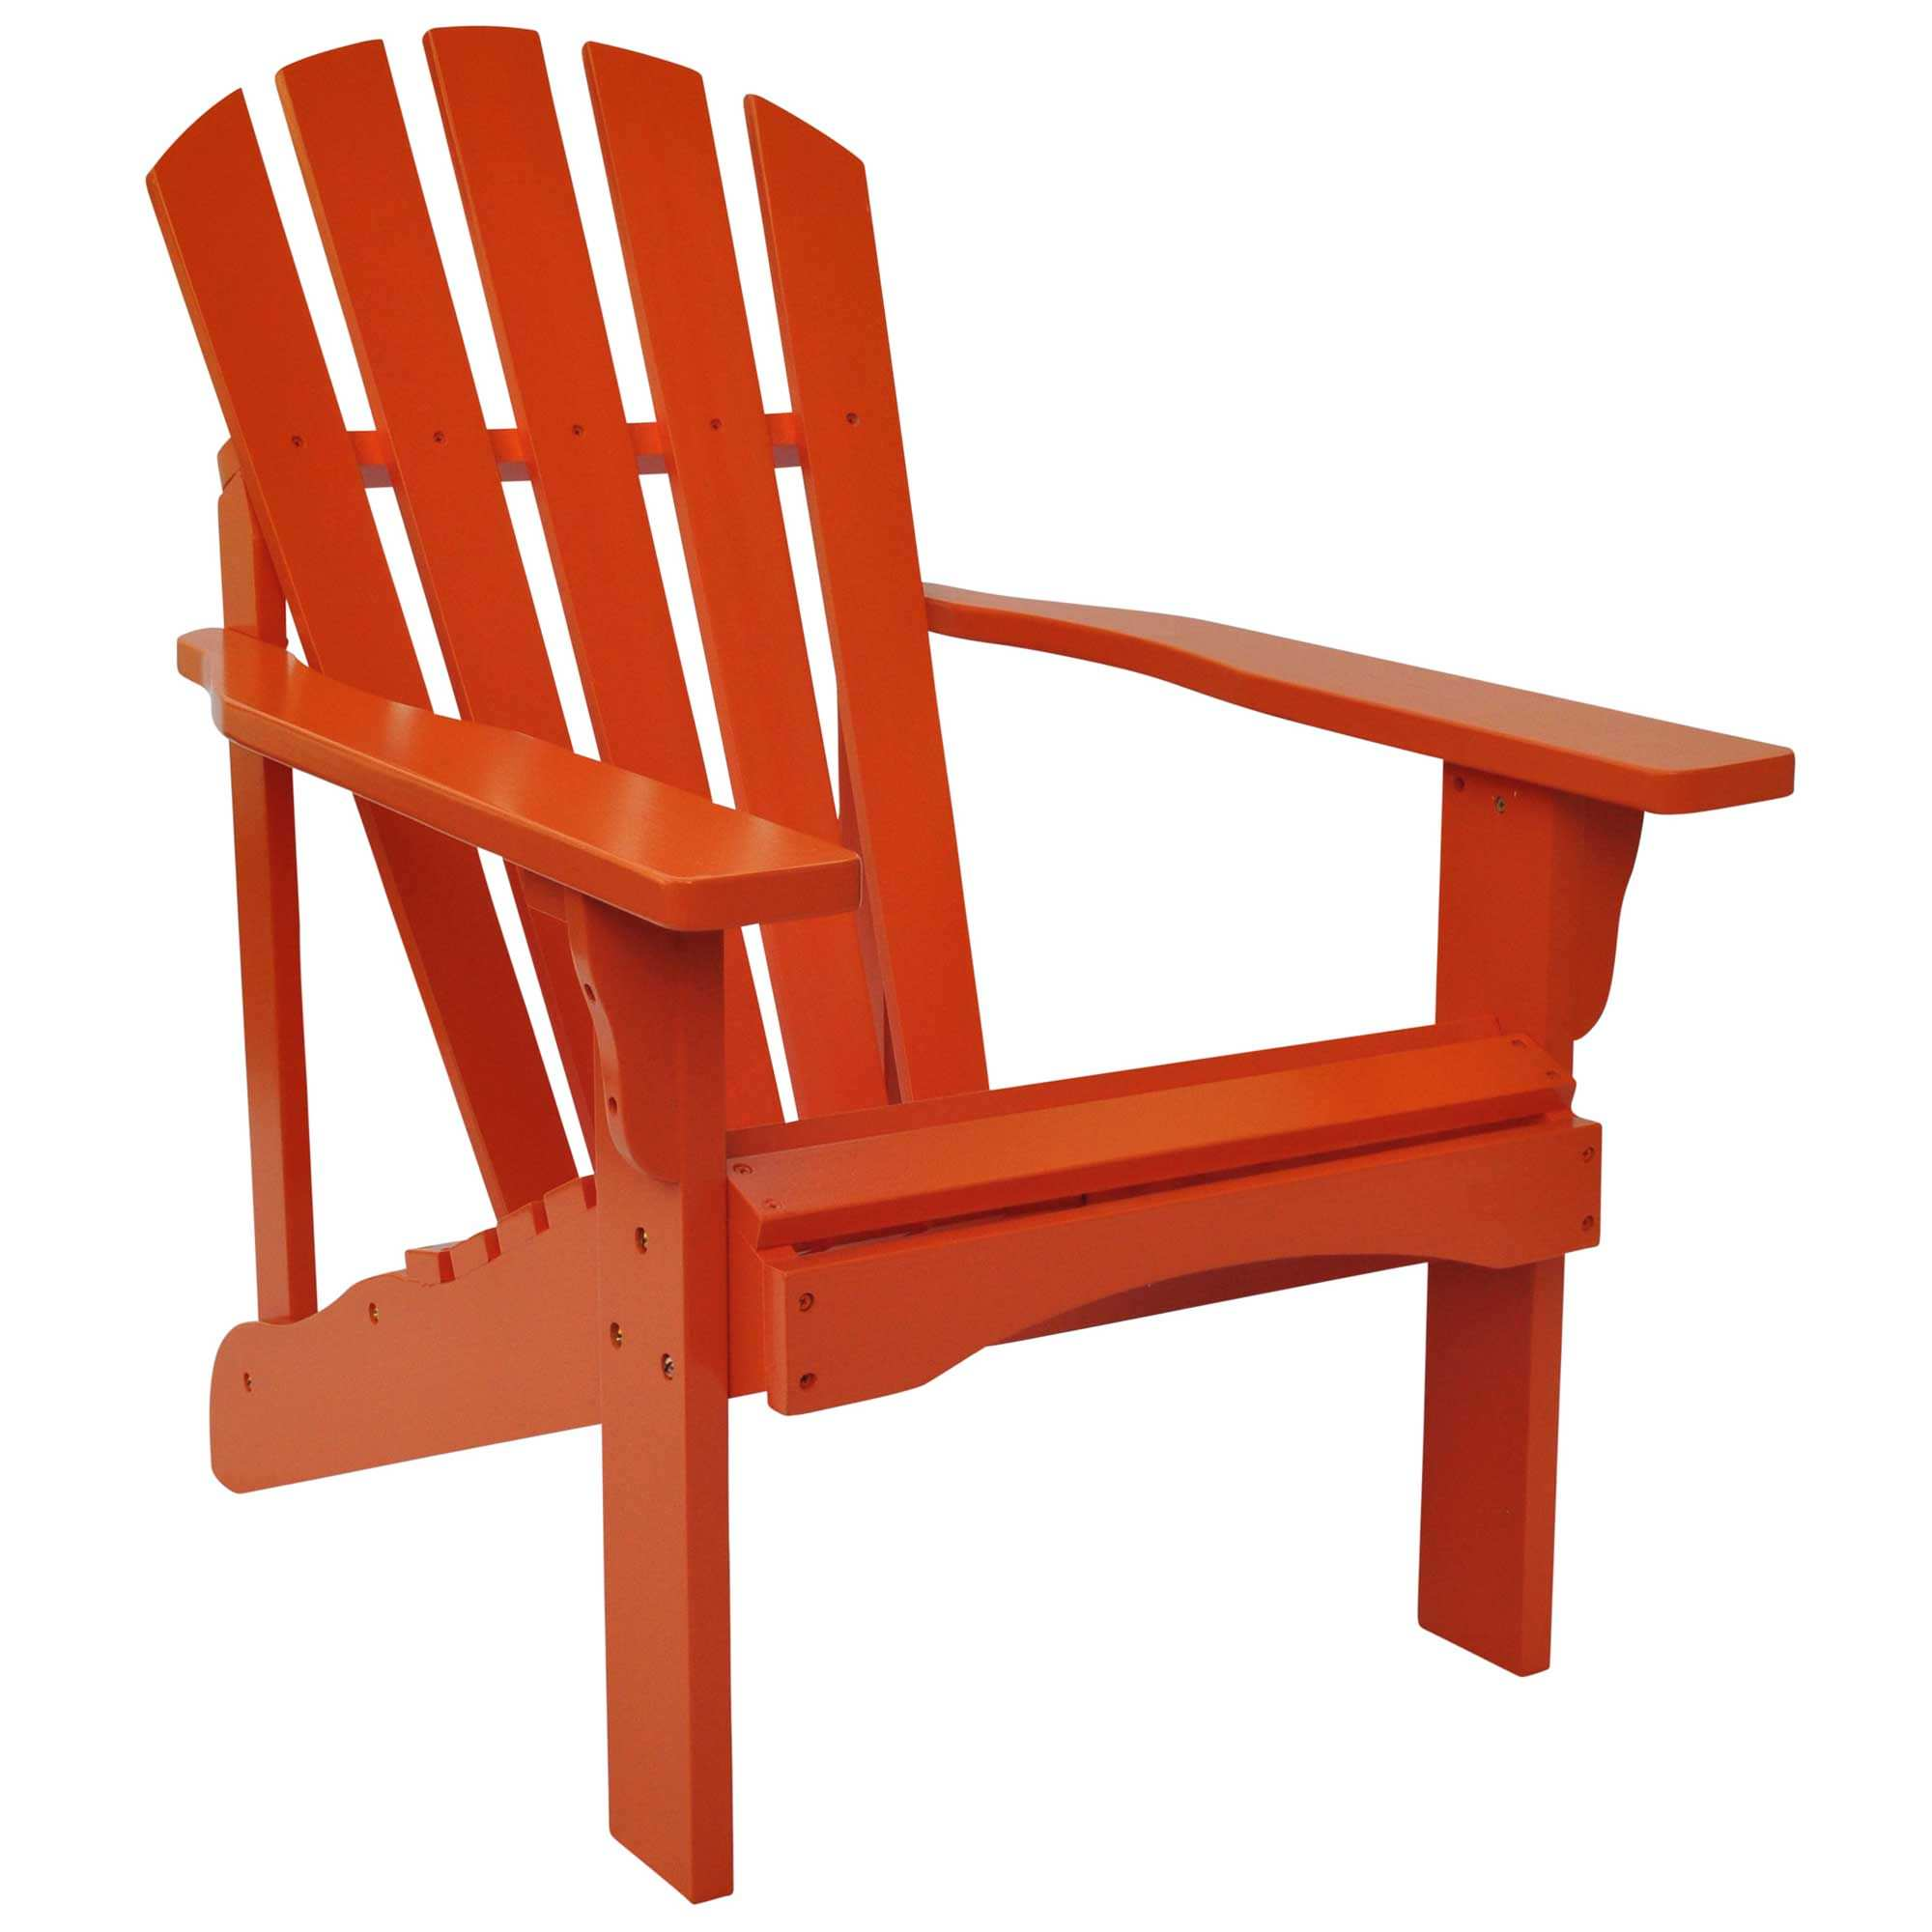 Rockport Cedarwood Adirondack Chair Shine Company DFOHome